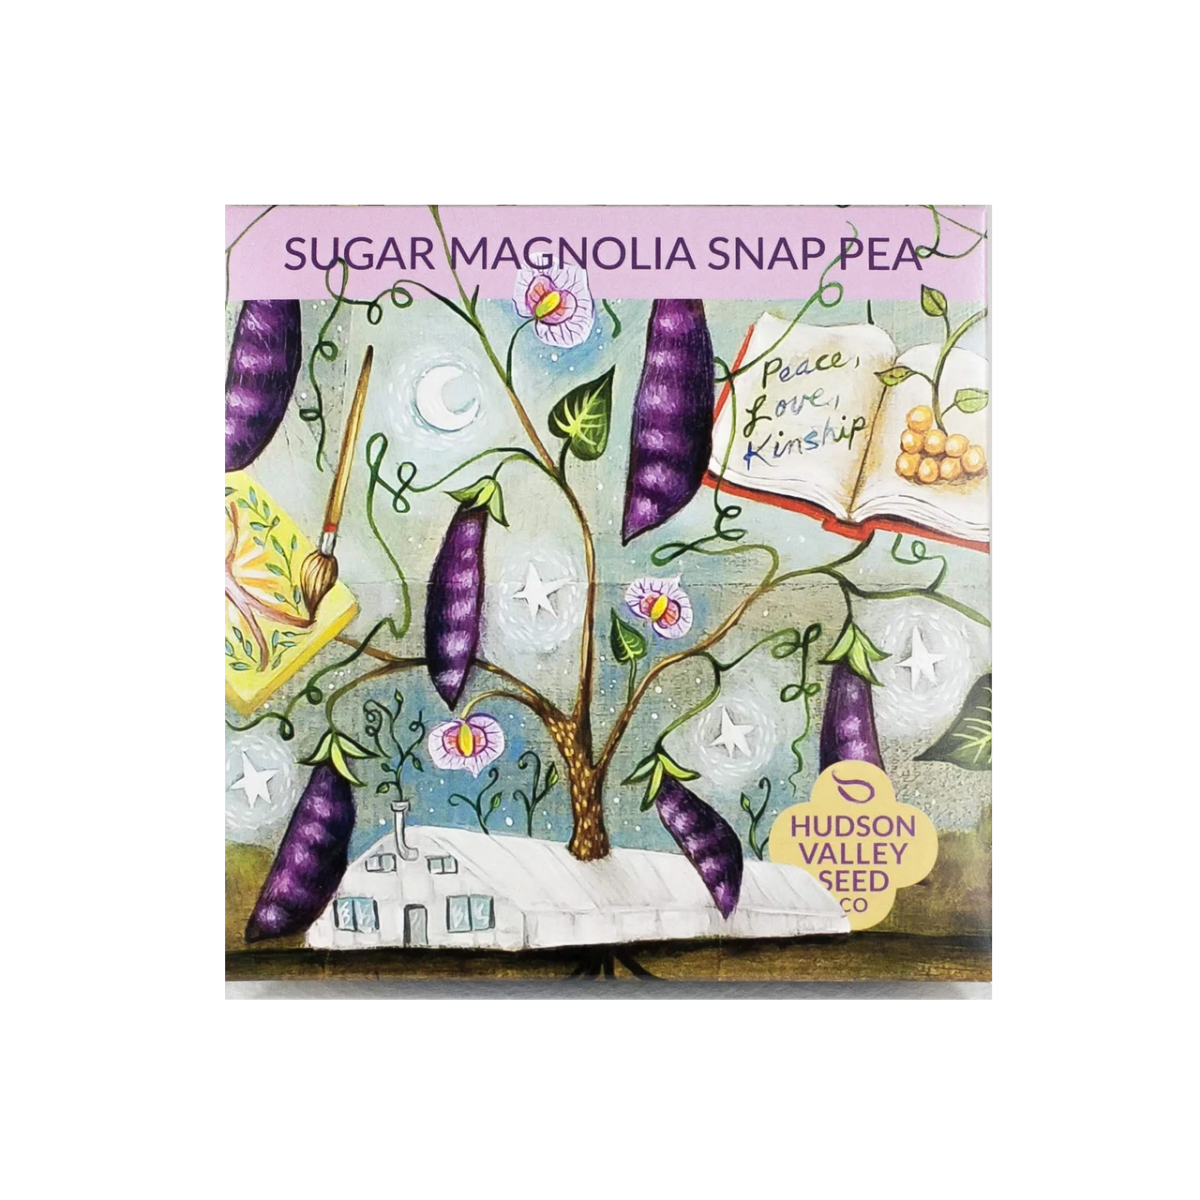 Hudson Valley Seed Co Sugar Magnolia Snap Pea